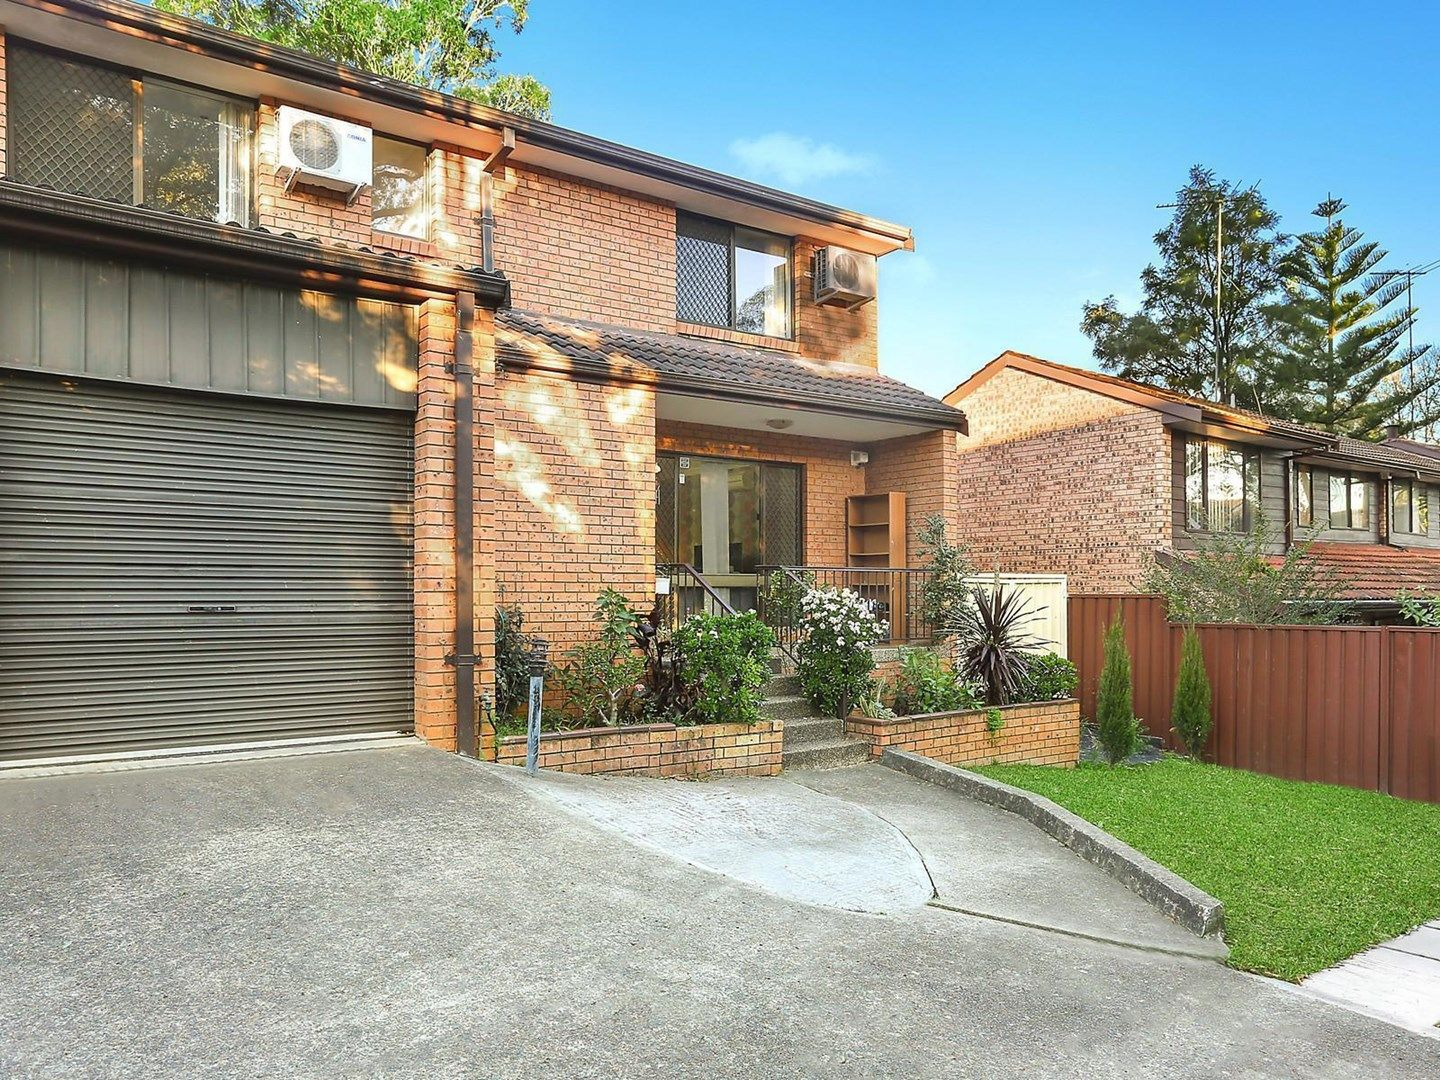 8/140 Greenacre Road, Greenacre NSW 2190, Image 0